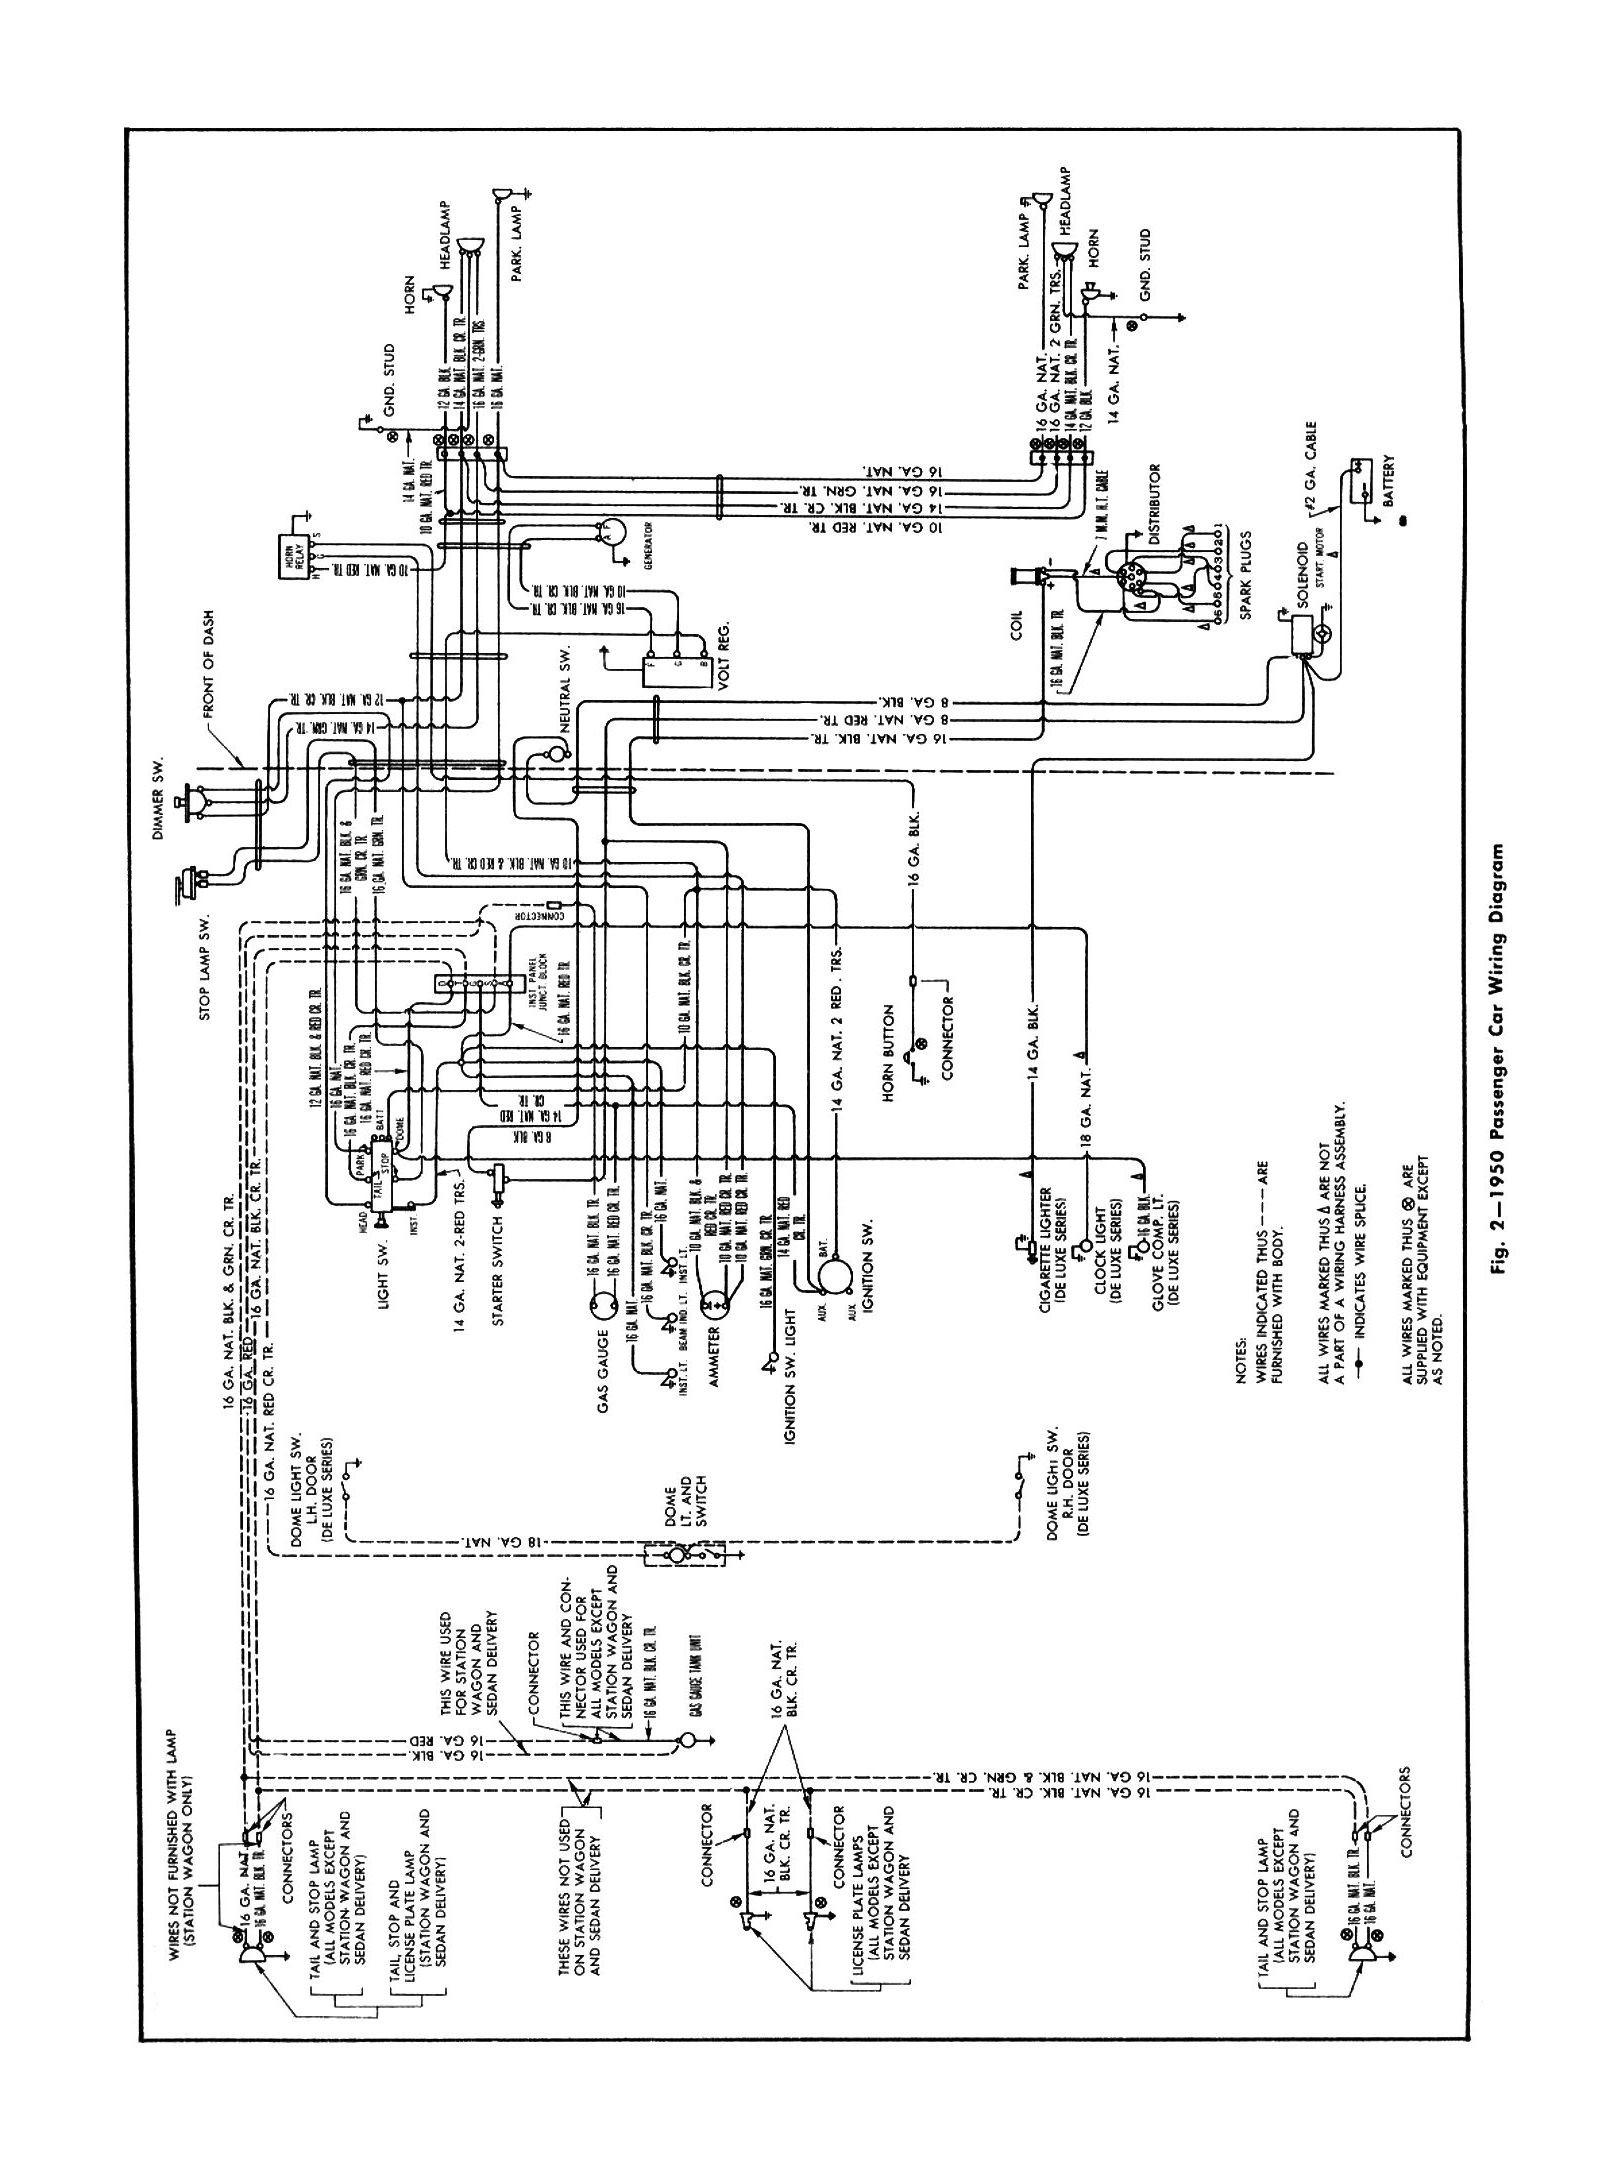 Ford Car Wiring Diagrams Free Vehicle 1938 Voltage Regulator Diagram General U2022 Rh Msblog Co 1948 1956